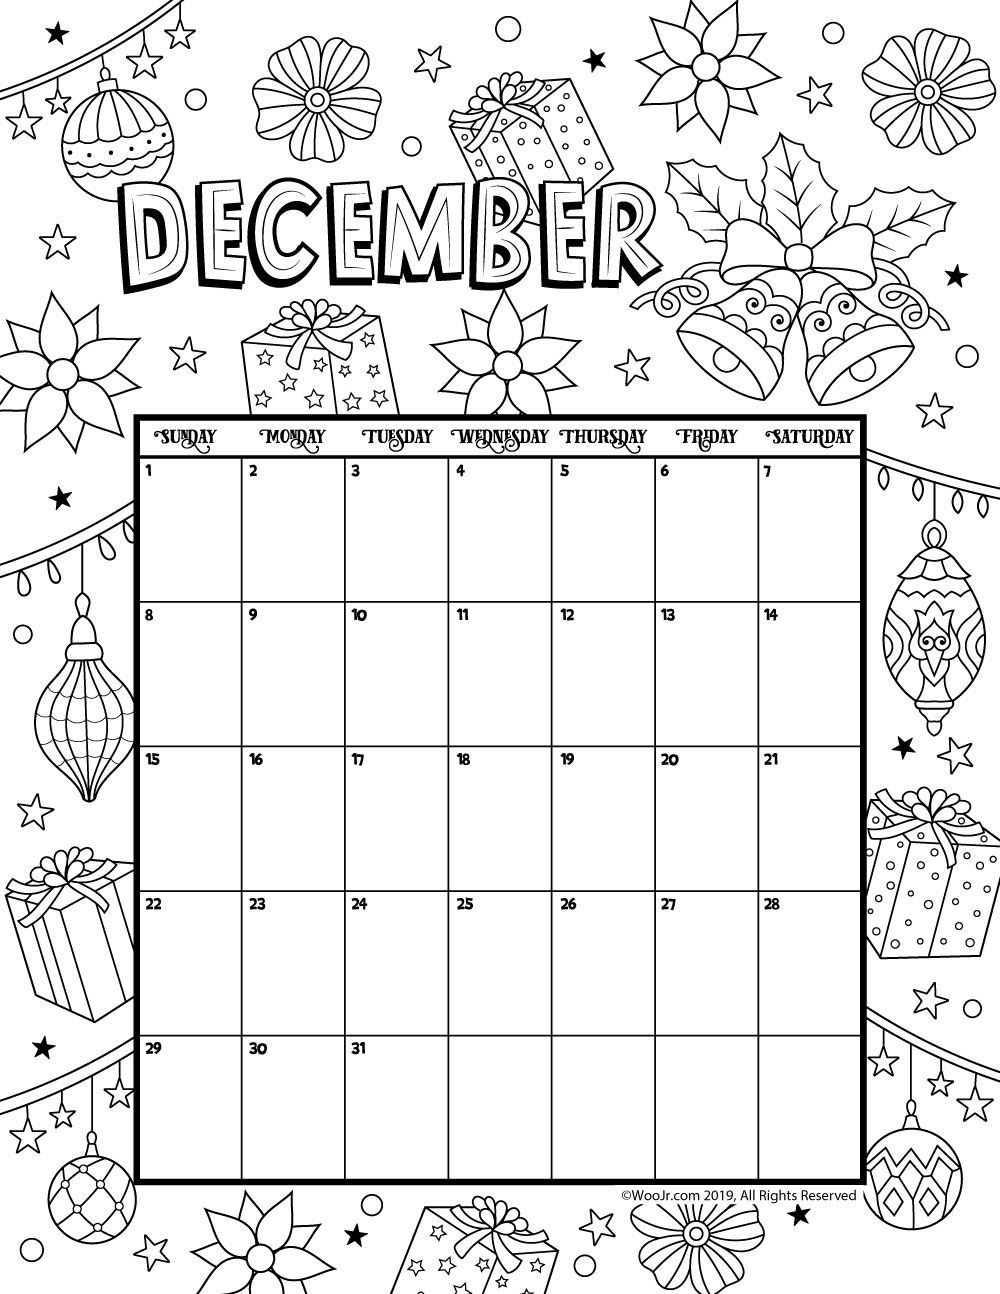 December 2019 Coloring Calendar Kids Calendar Calendar Pages